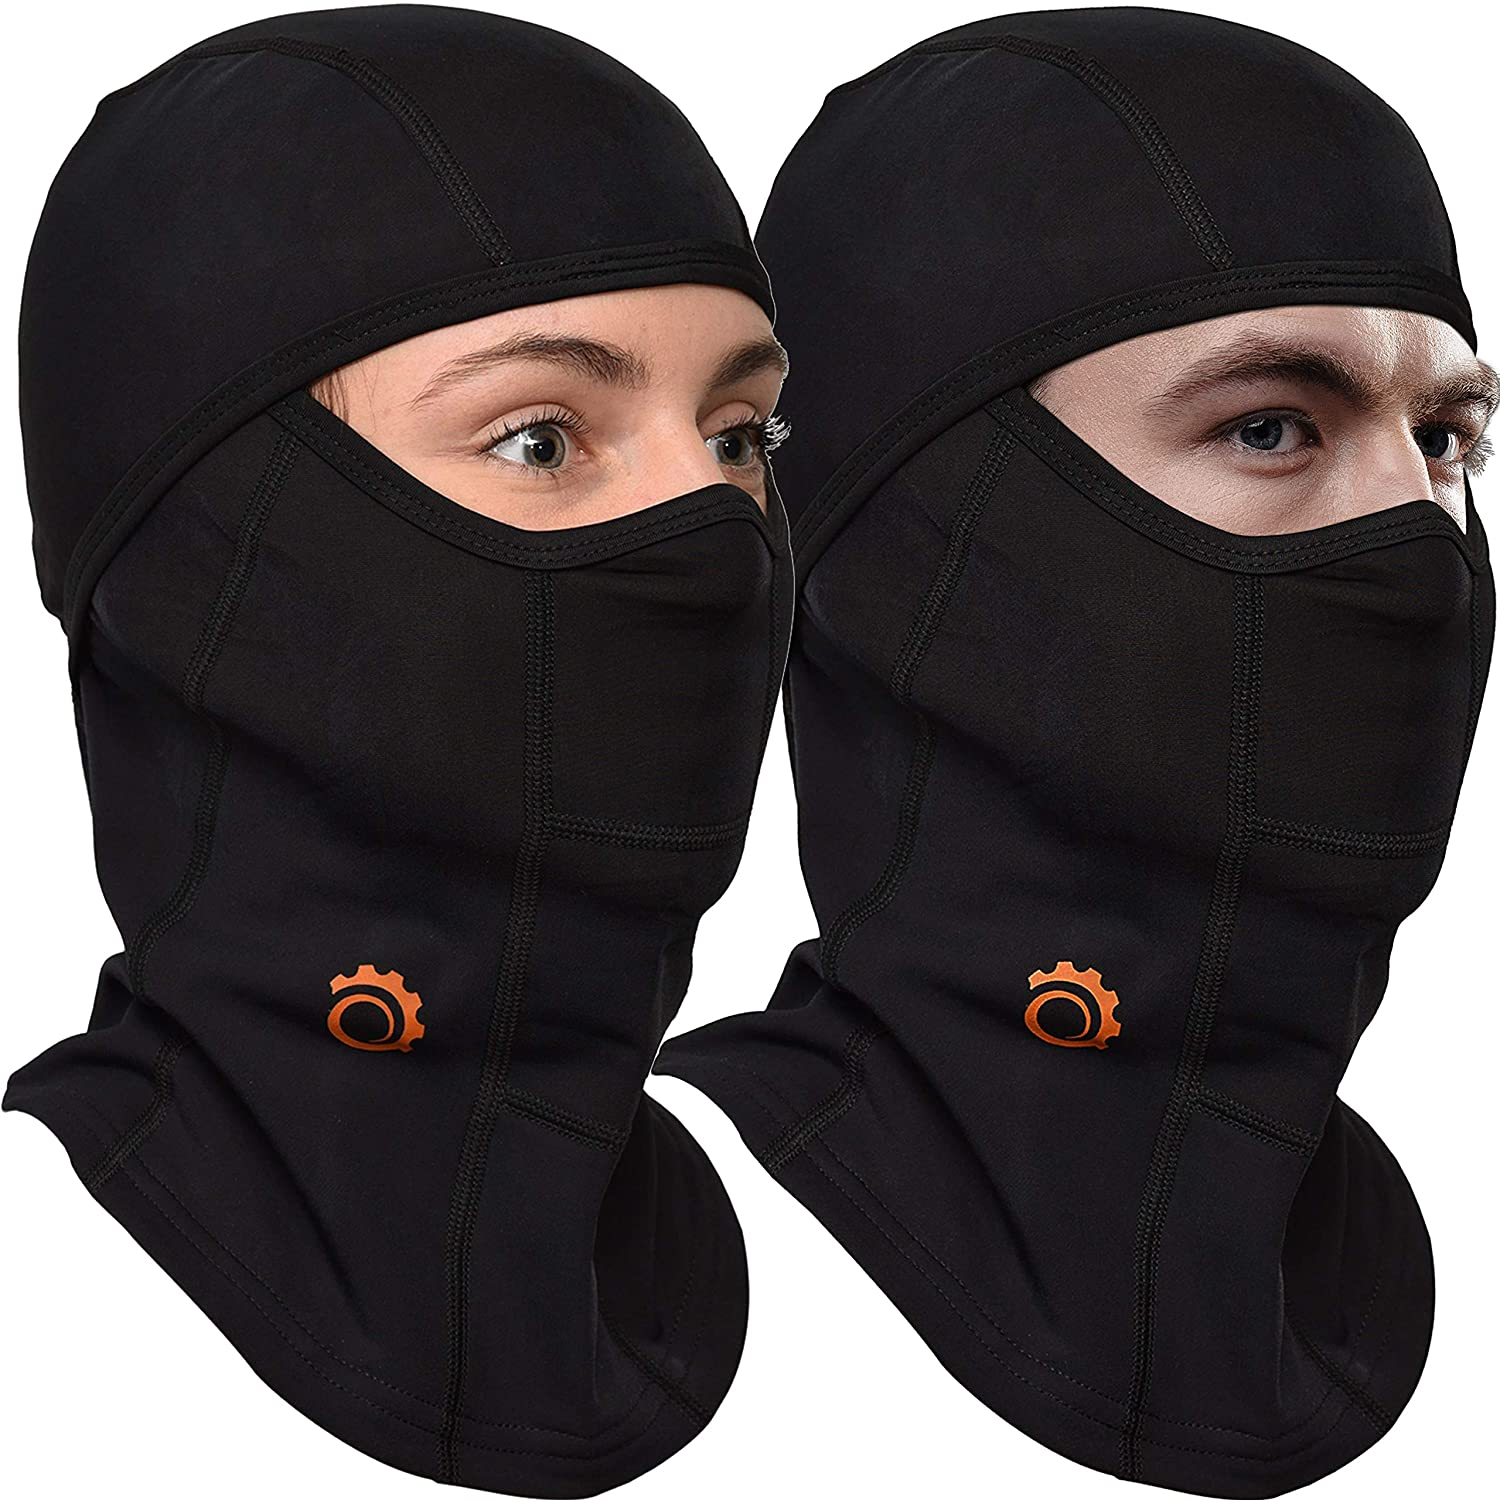 Balaclava Ski Mask and FREE Gift, GearTOP Sports and Motorcycle Biking Accessories #1 Top Pink Balaclava Bicycle Helmet Liner 14-0101BAL